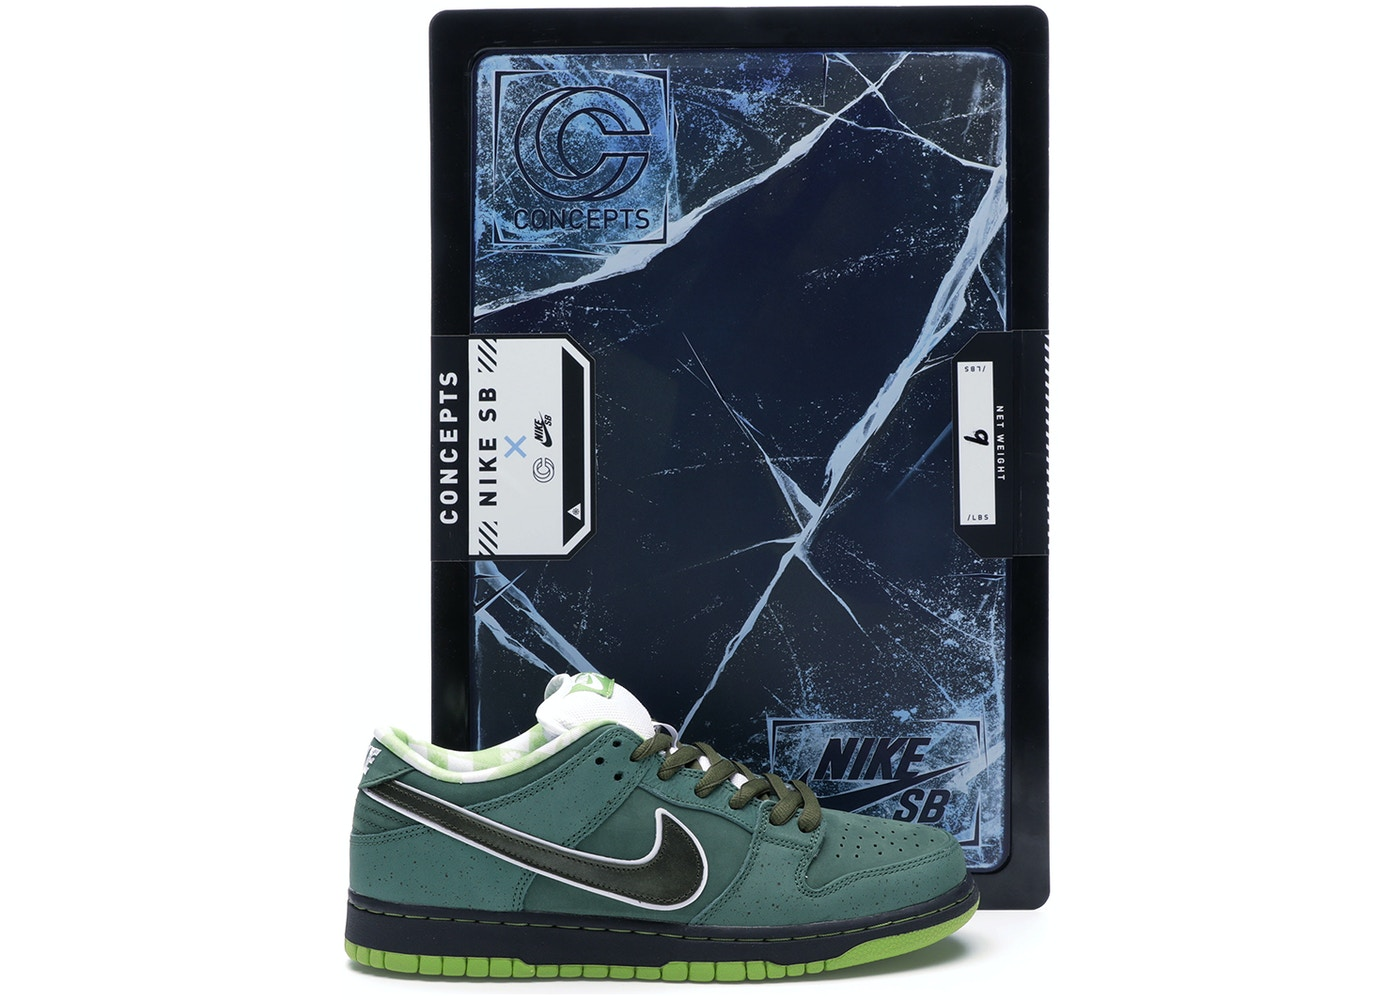 size 40 0acab cd68a Nike SB Dunk Low Concepts Green Lobster (Special Box)